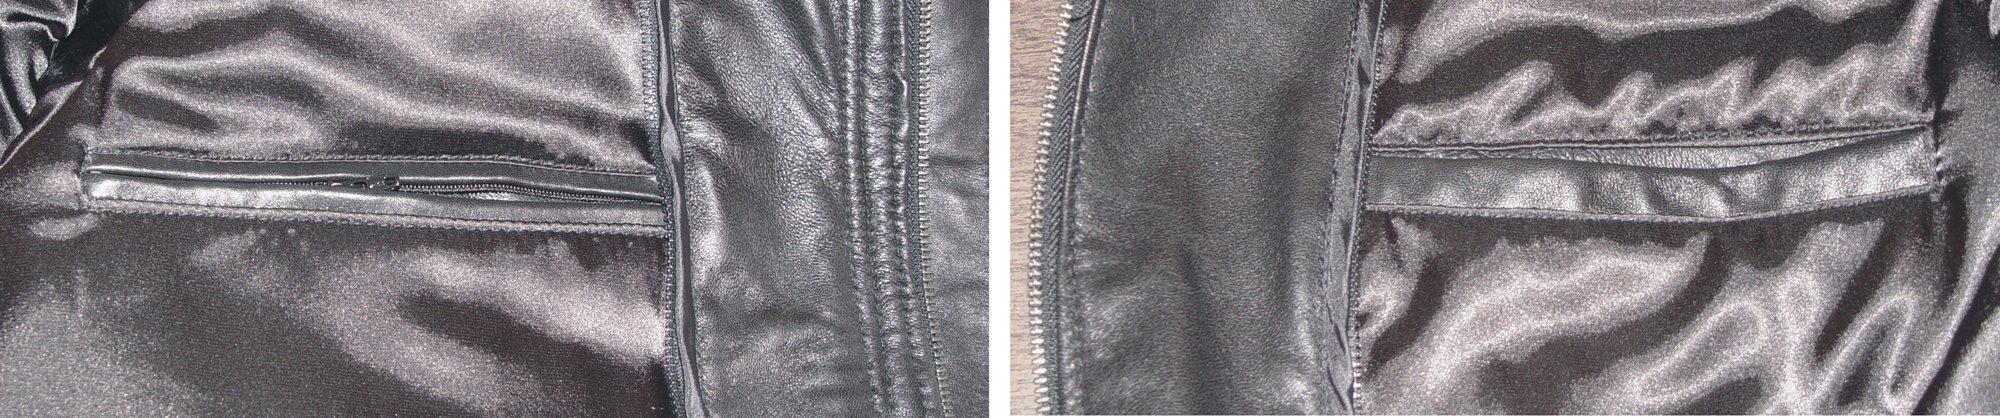 Nettailor 2039 Fine Leather Pea Coat Fashion for Men Large Size All Size by NETTAILOR (Image #5)